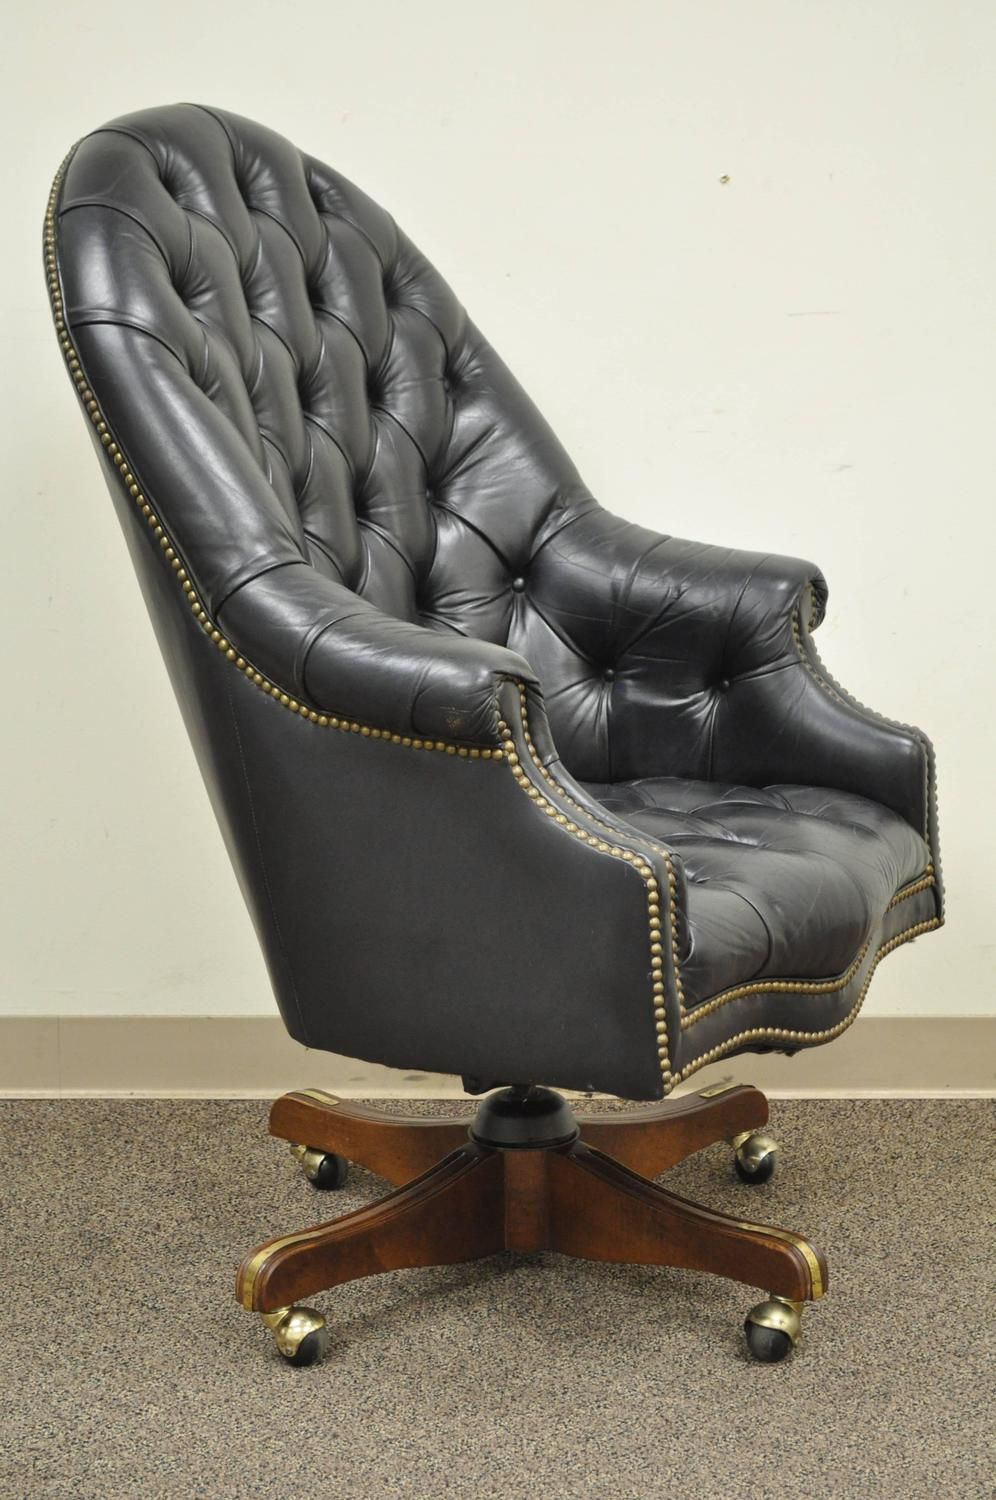 medium resolution of vintage deep tufted black leather english chesterfield style office desk chair 2